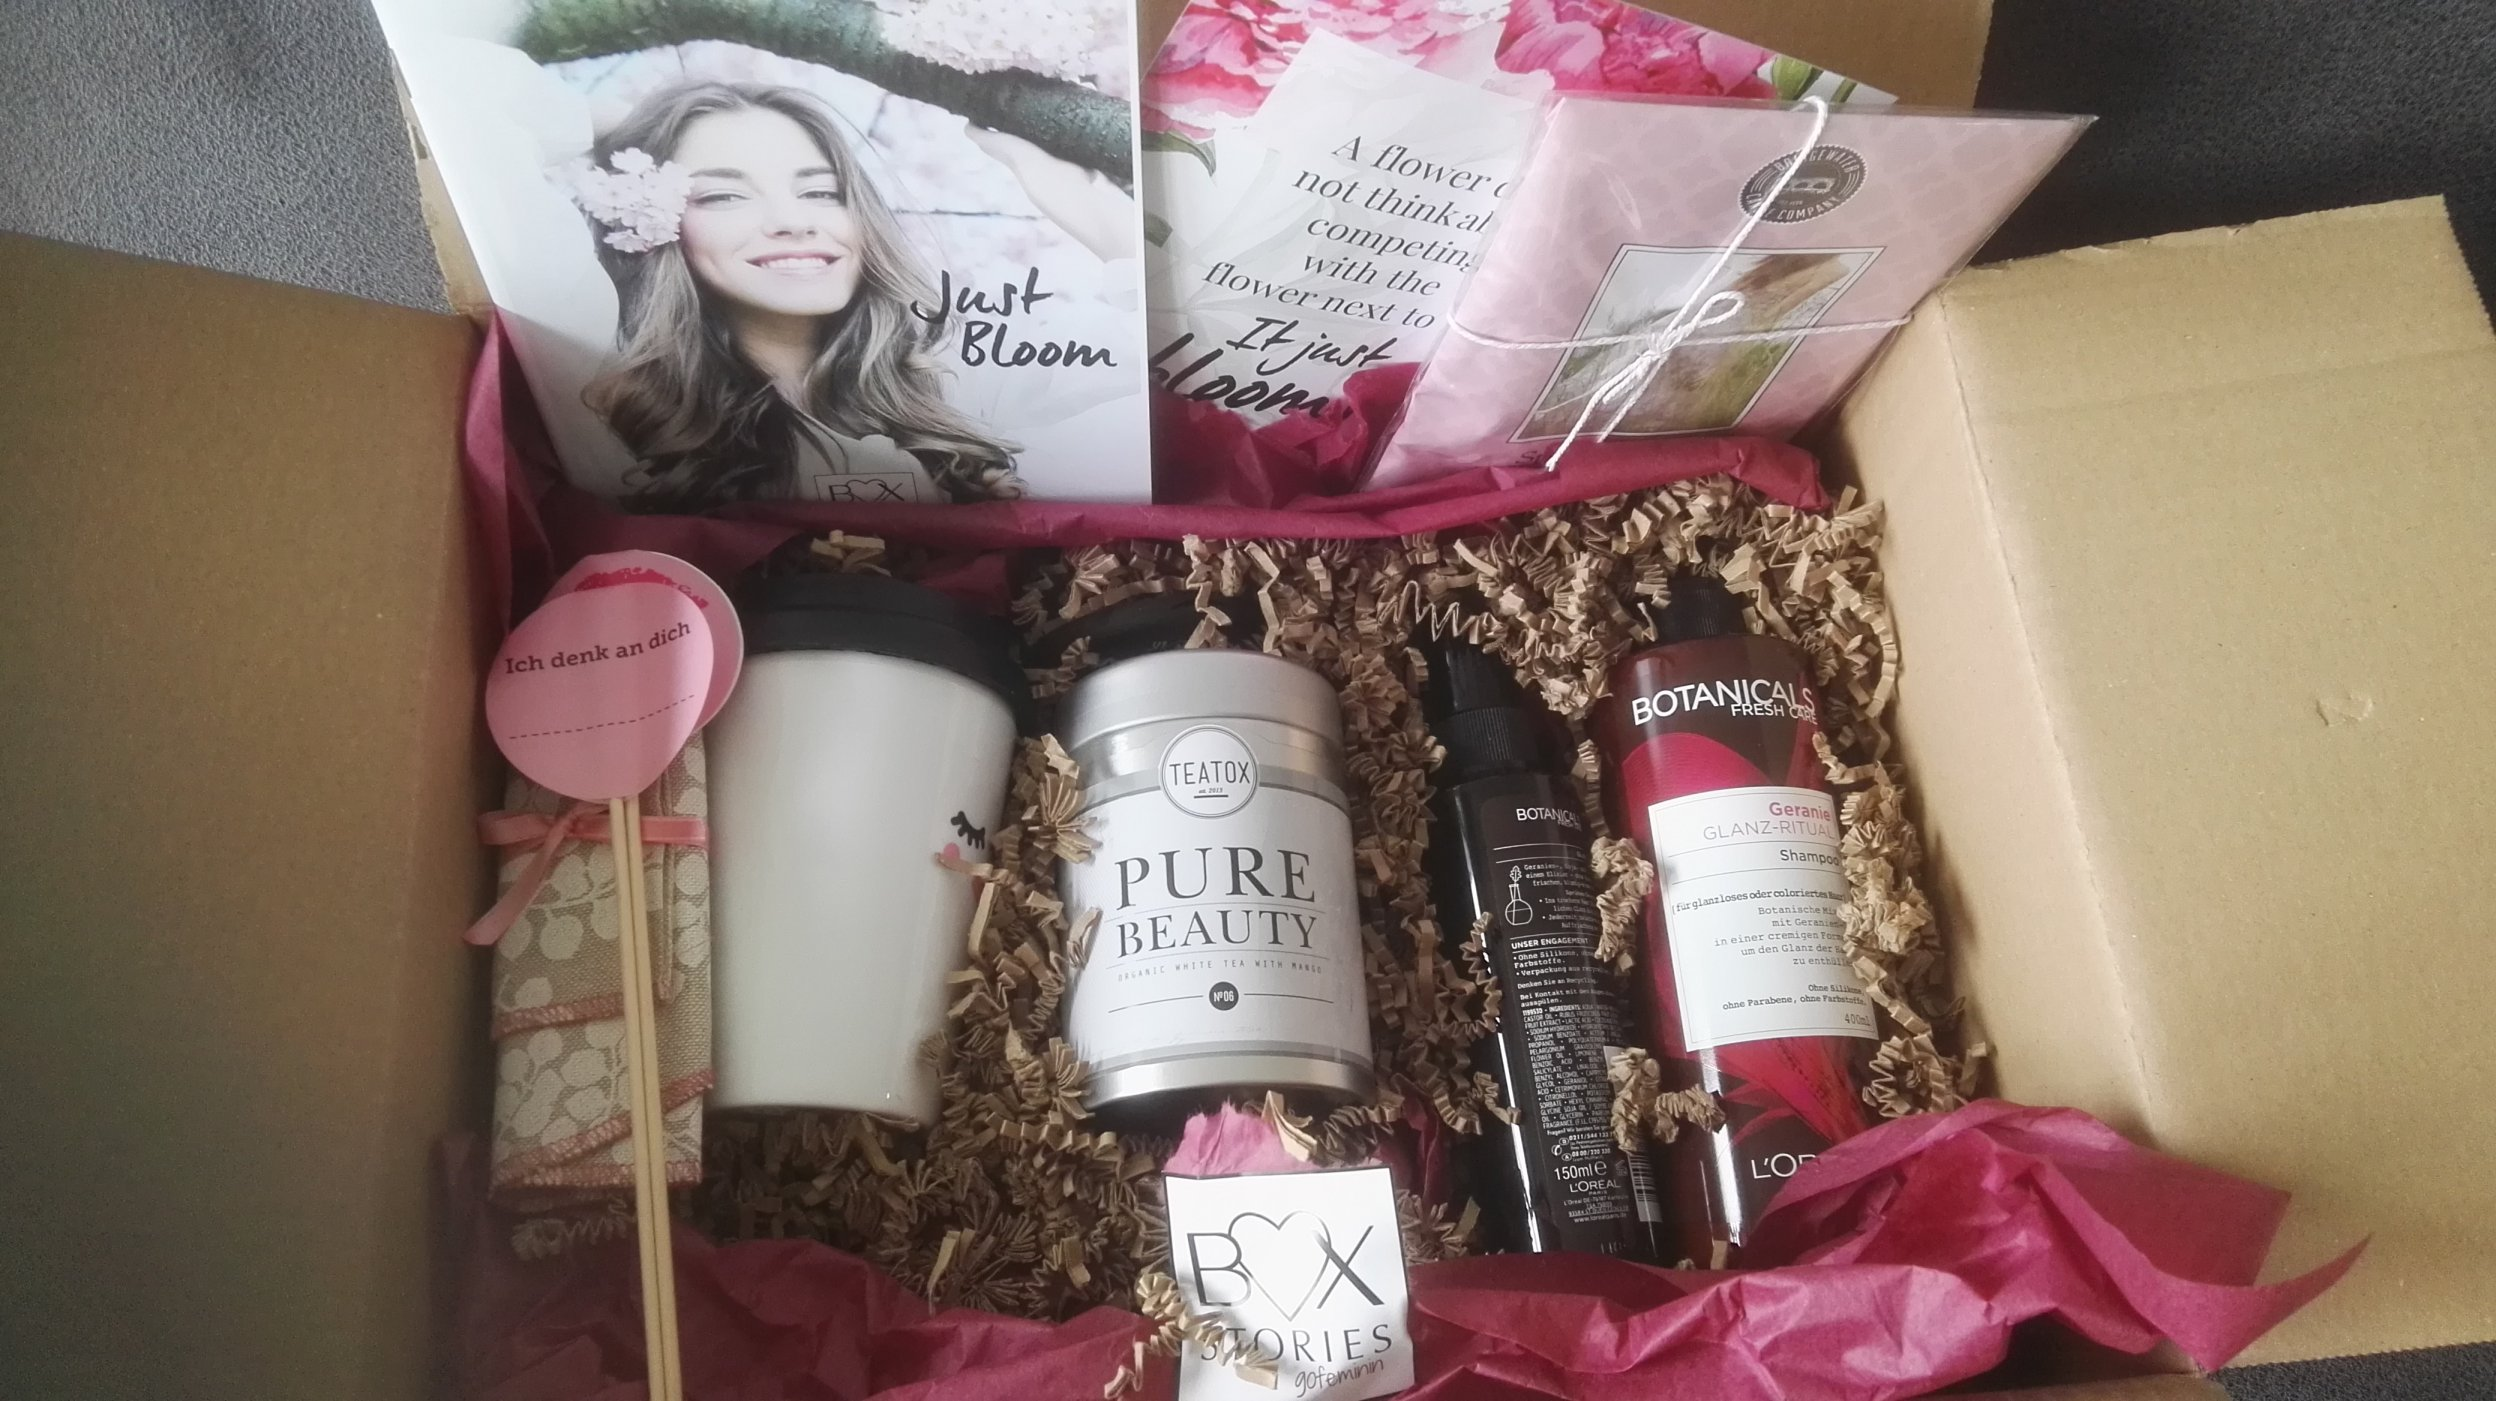 Gofeminin Kleine Küche Box Just Bloom Produktedschungel